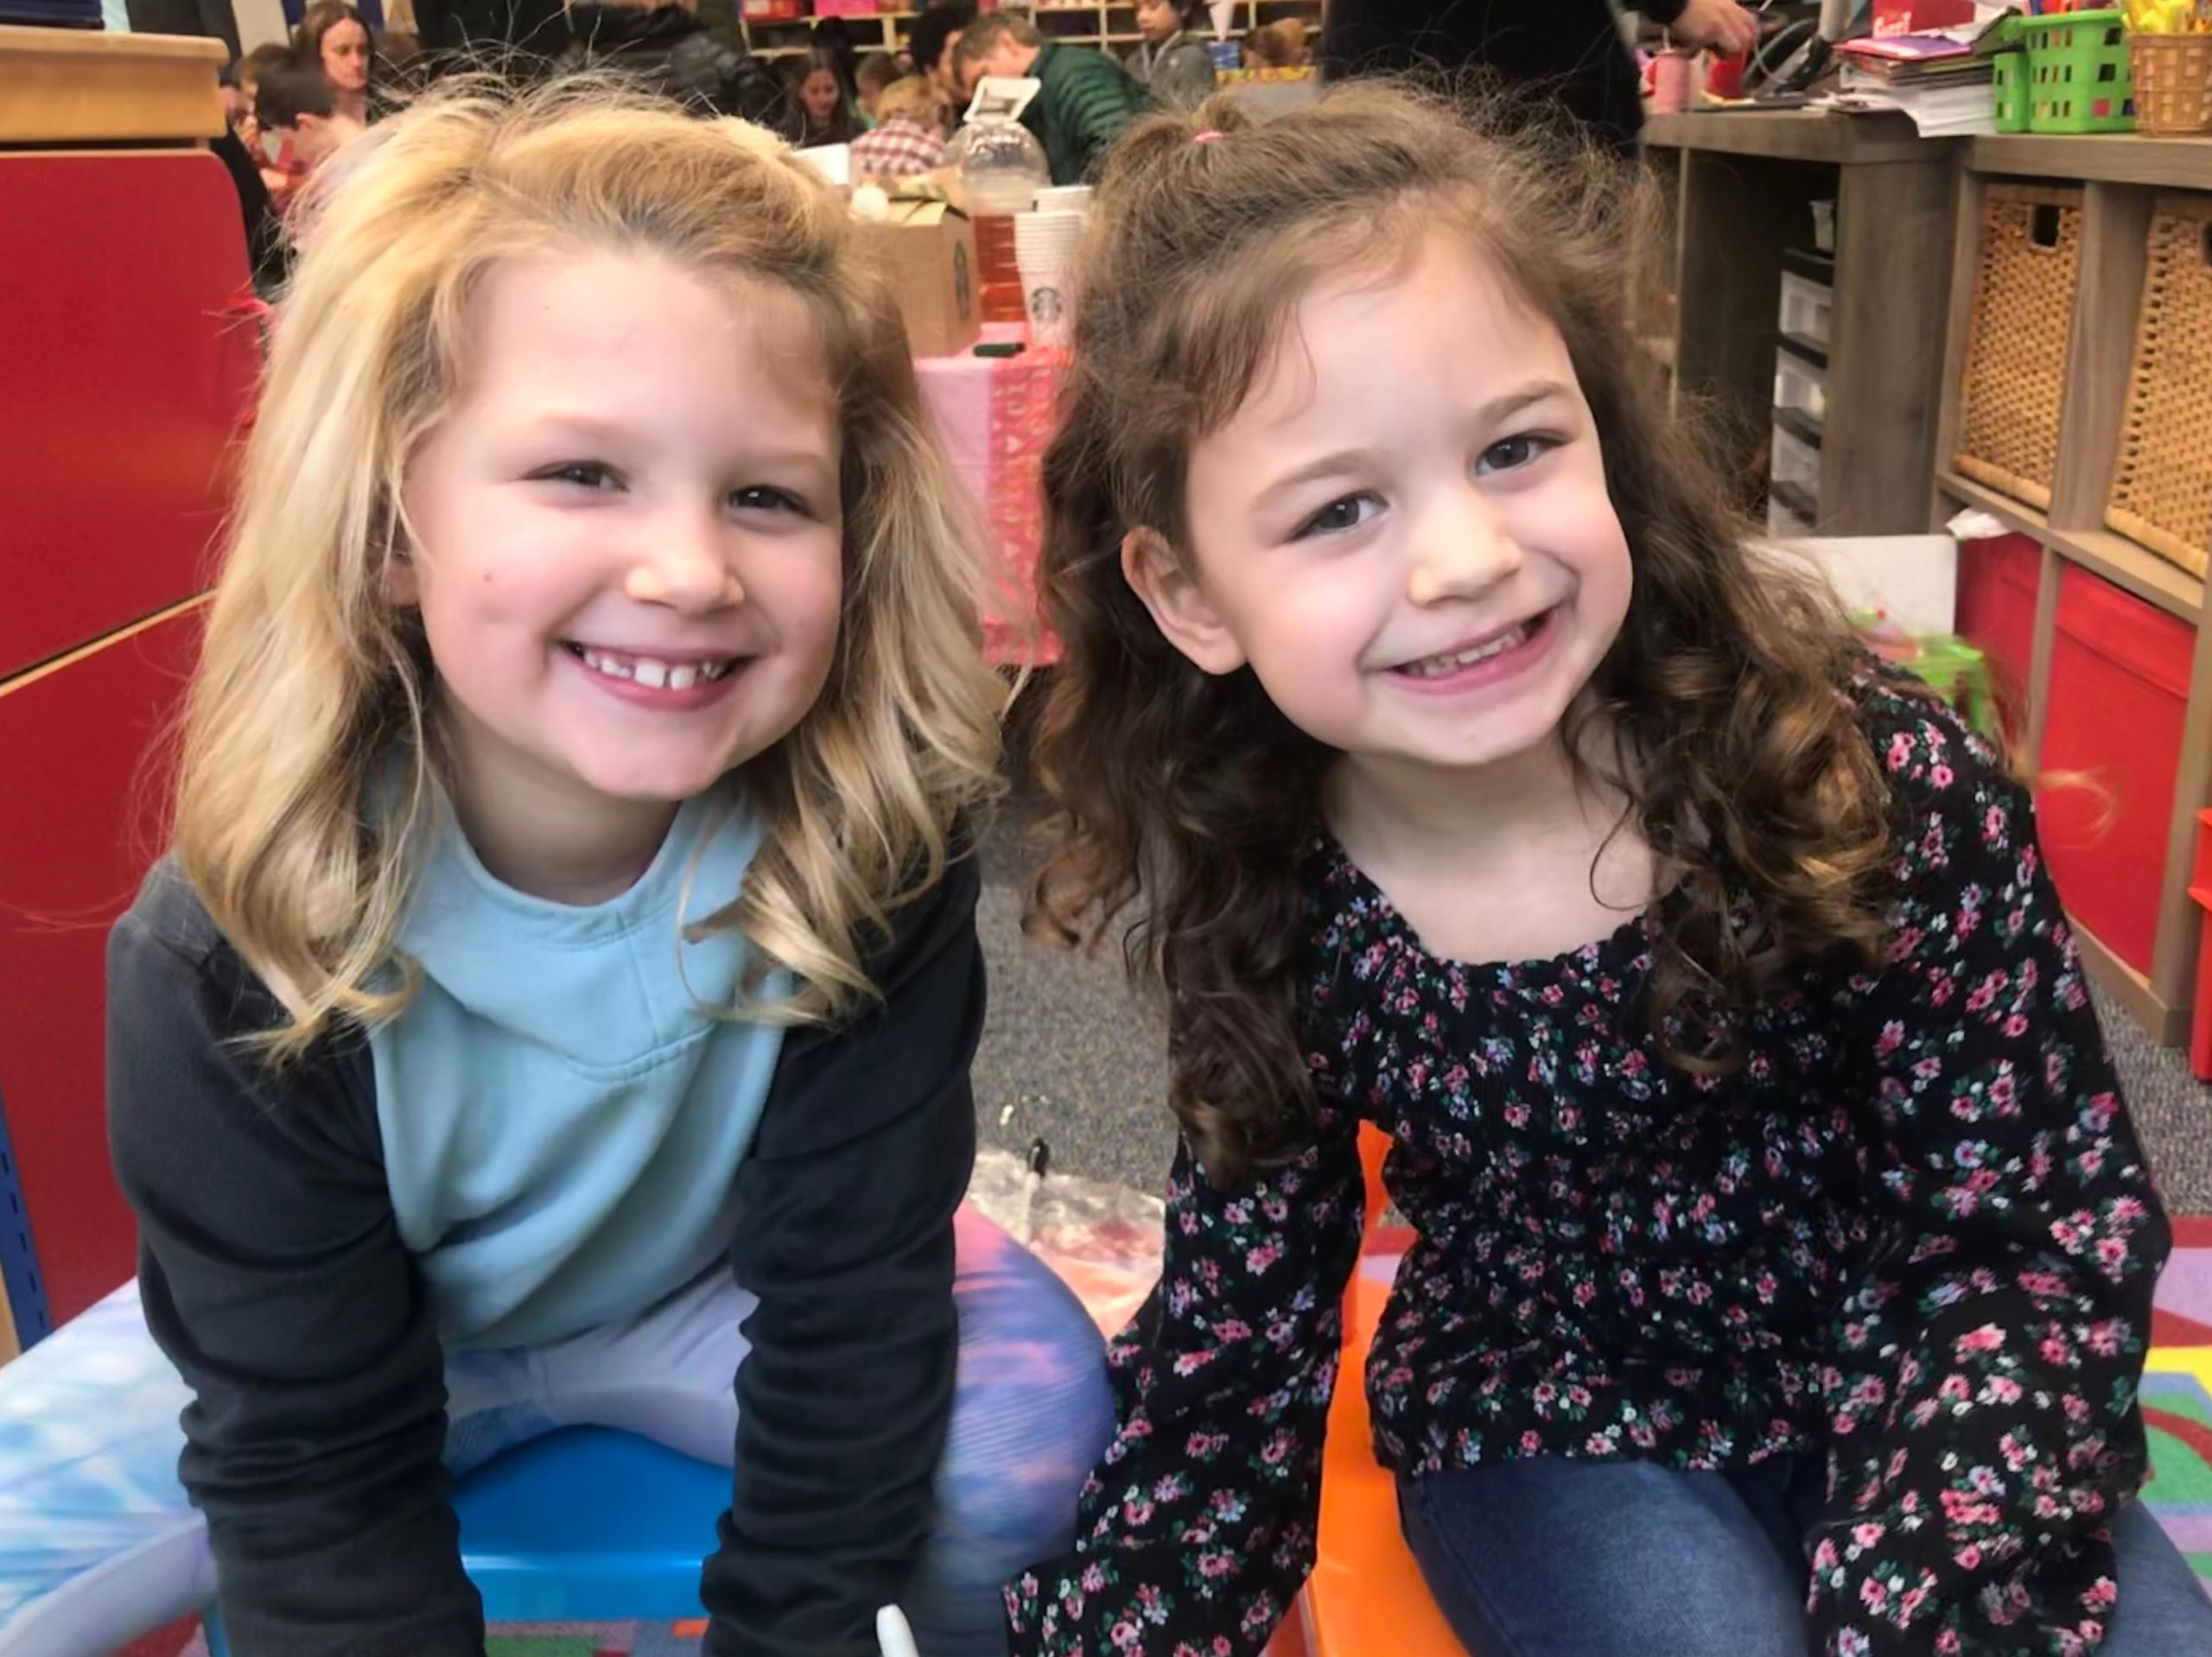 two young girls smiling in need of a Professional Nanny